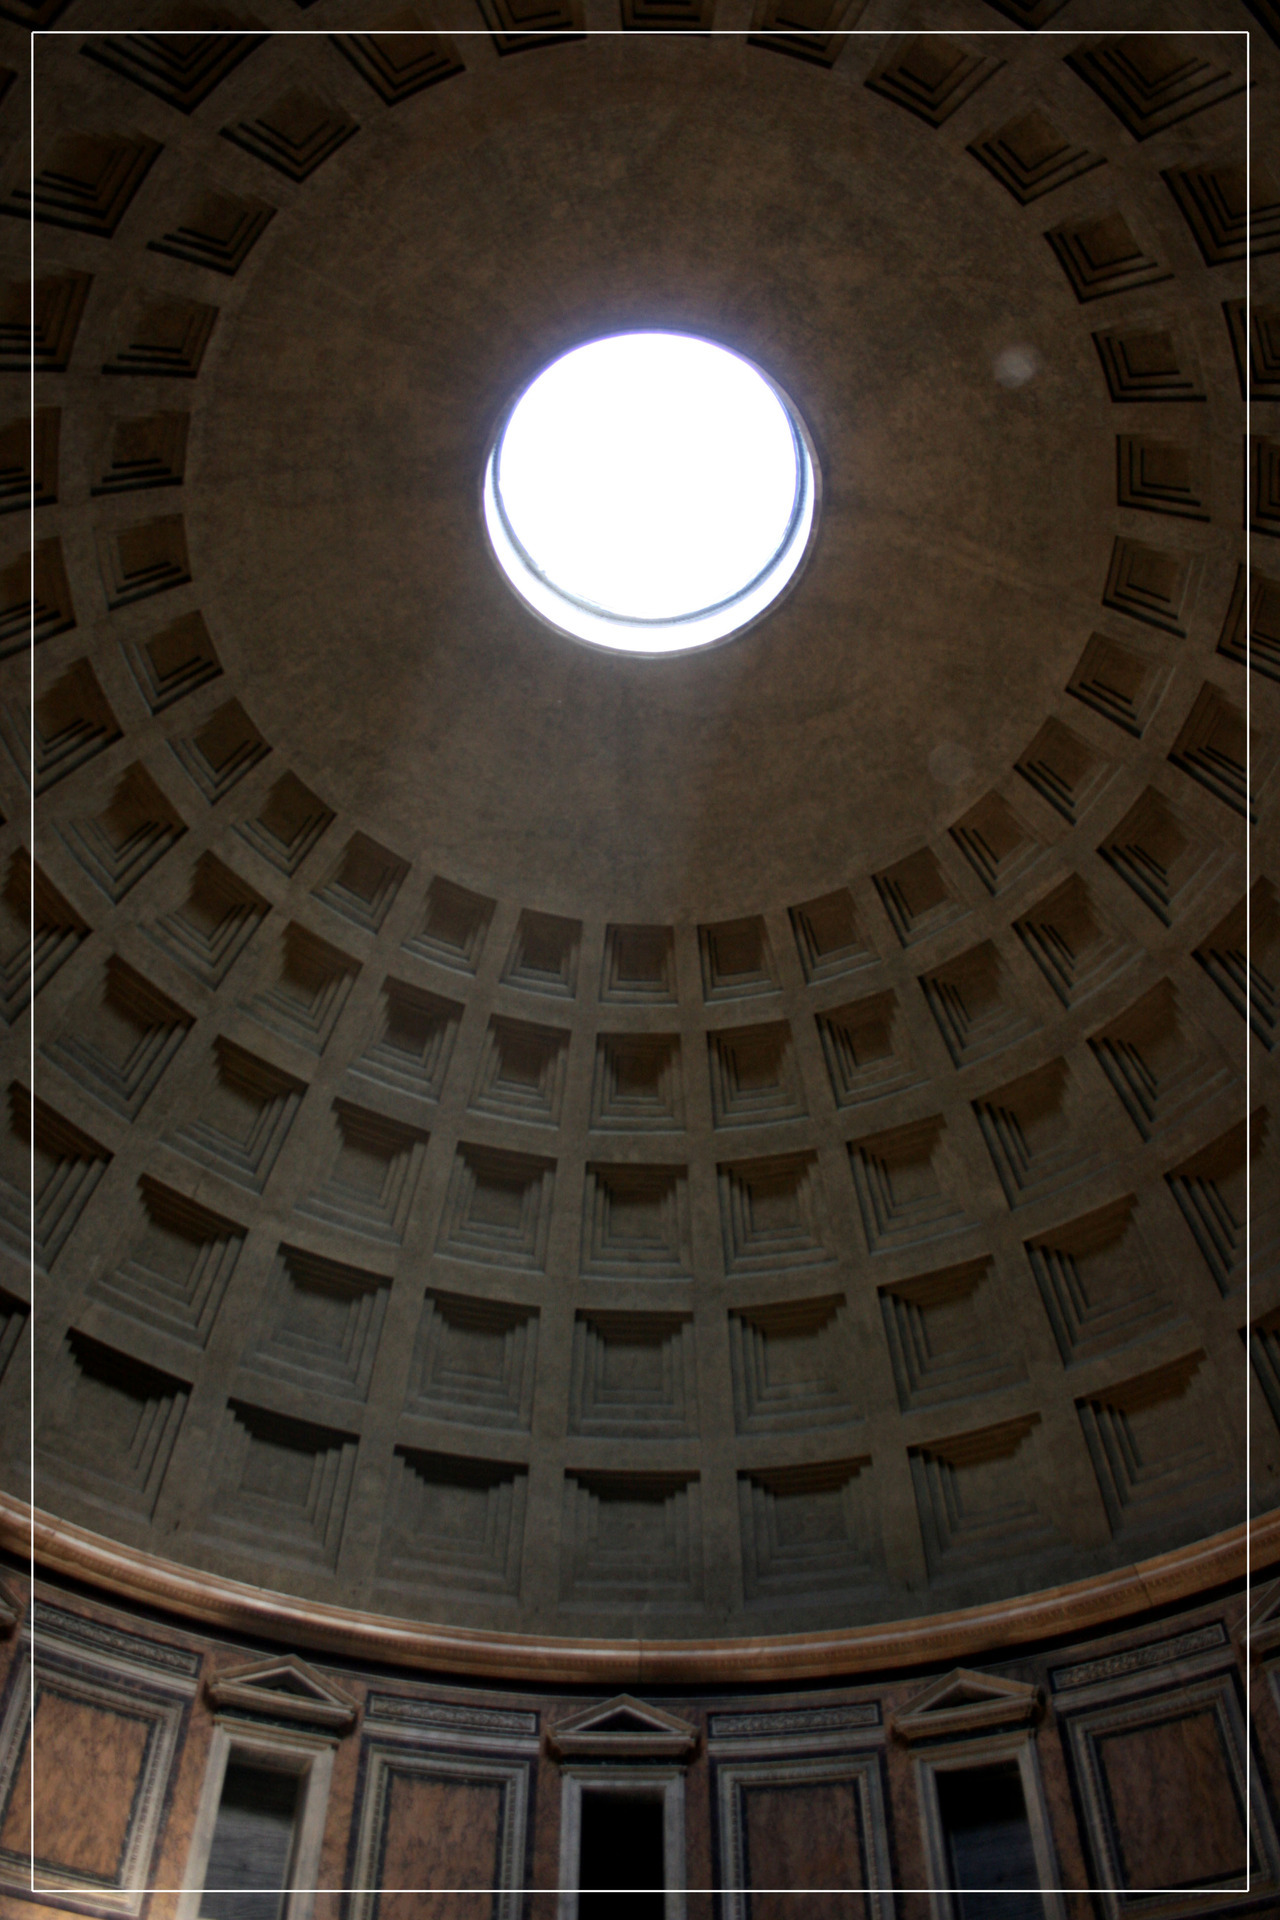 The Pantheon in Rome was built 118 - 125 AC. It's now a Catholic church. It's very important for the Roman Architecture because it was built with opus caementitium, a new form of material (similar to modern Portland cement). This material first allowed to built domed constructure.